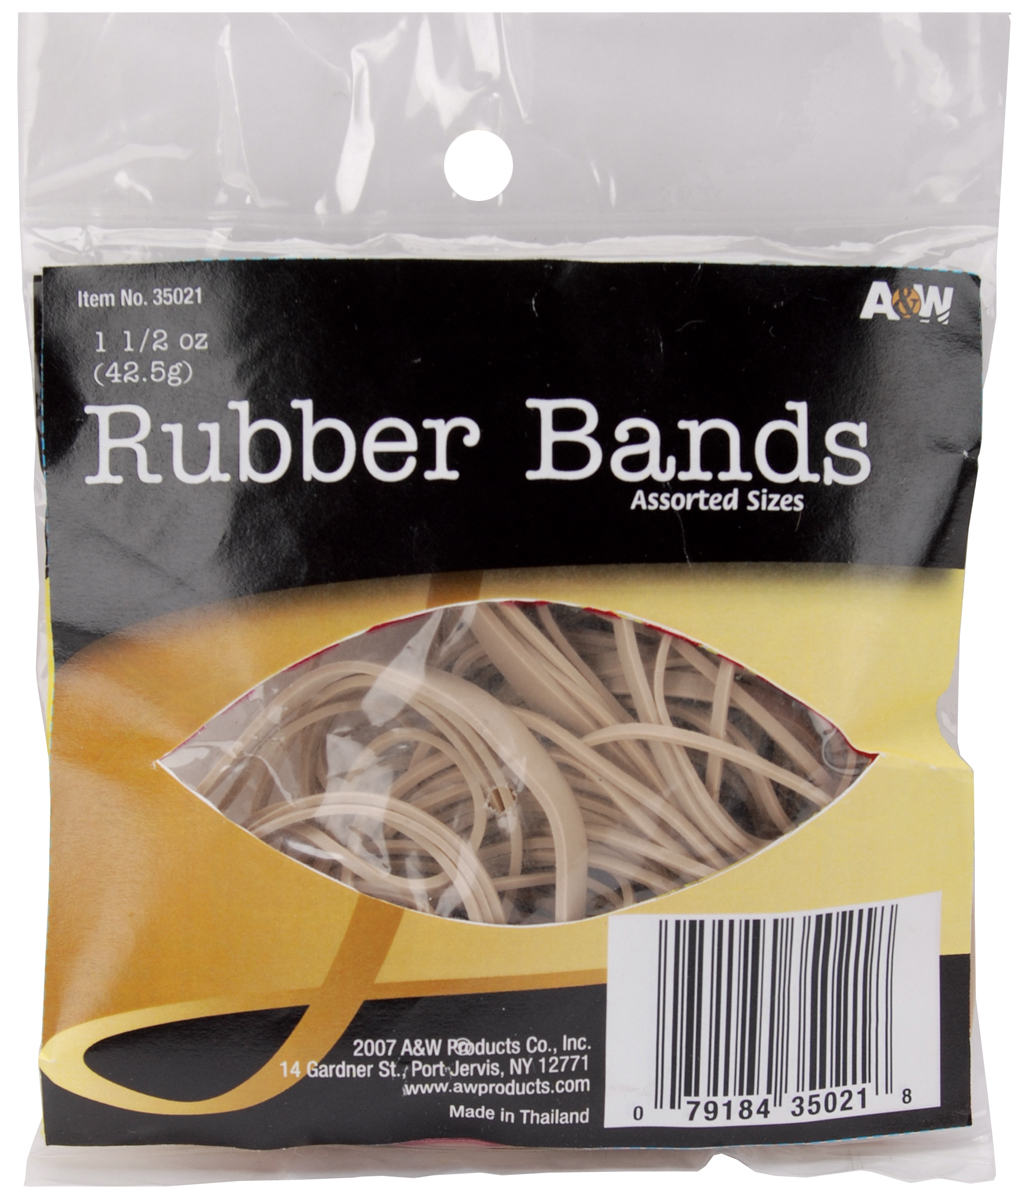 Rubber Bands 1.5oz-Tan - Assorted Sizes 35021